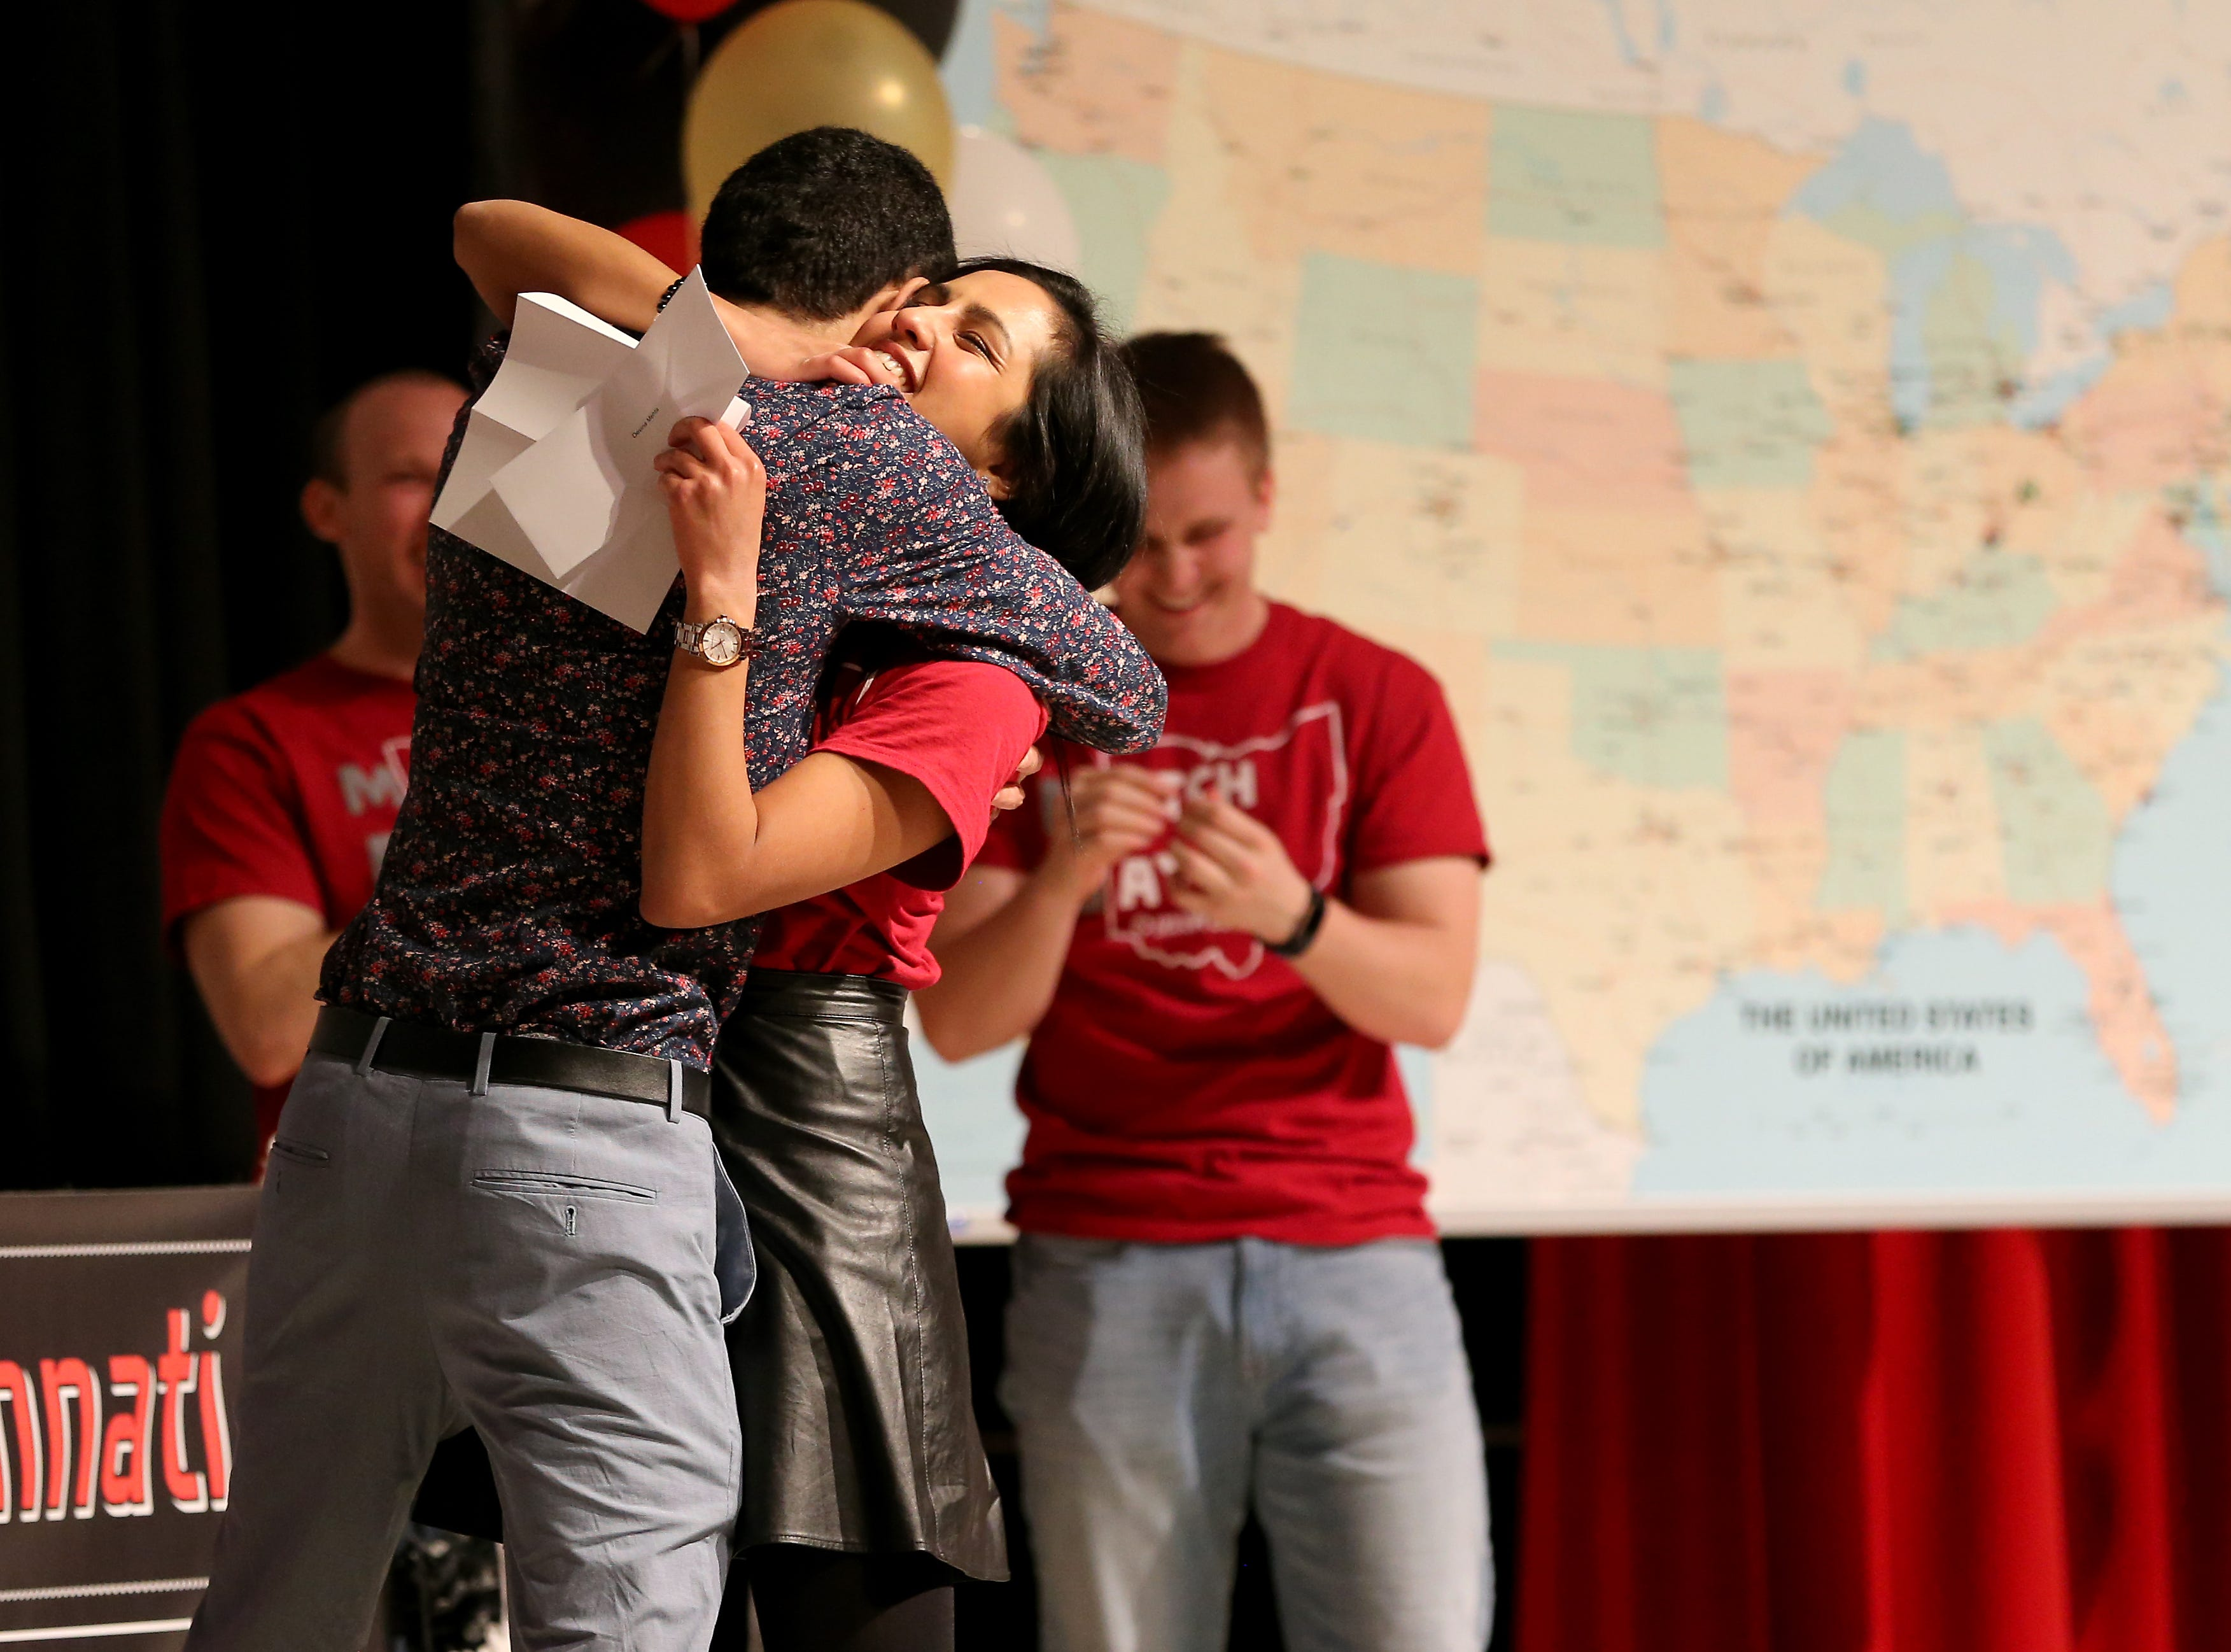 Devina Mehta, right, hugs her brother, Neil, after finding out she will be doing her residency in dermatology at Cornell University, during Match Day, Friday, March 15, 2019, at the University of Cincinnati's College of Medicine.